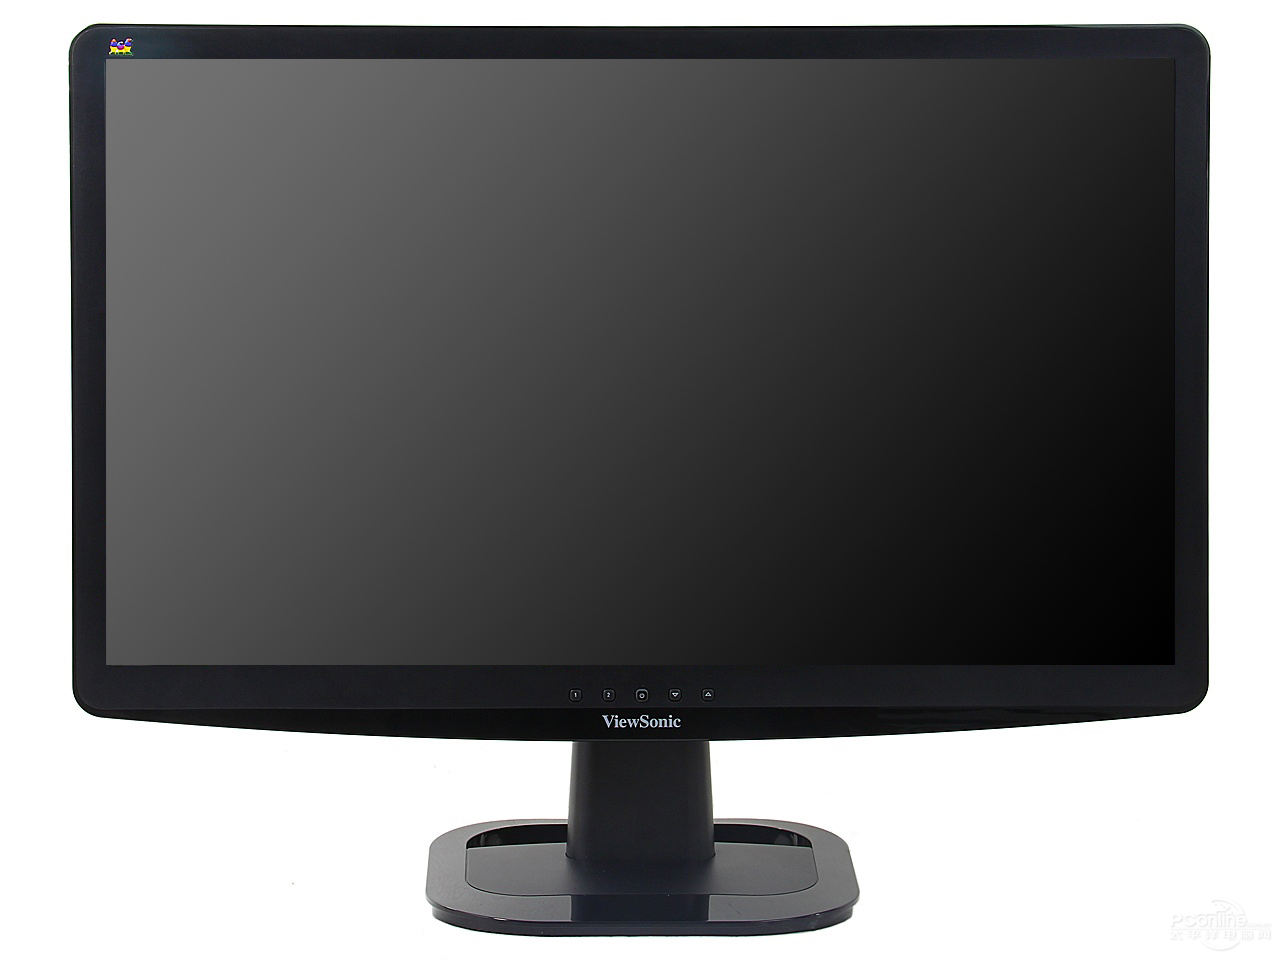 ViewSonic VX2336s - 23-calowy monitor SuperClear IPS LED